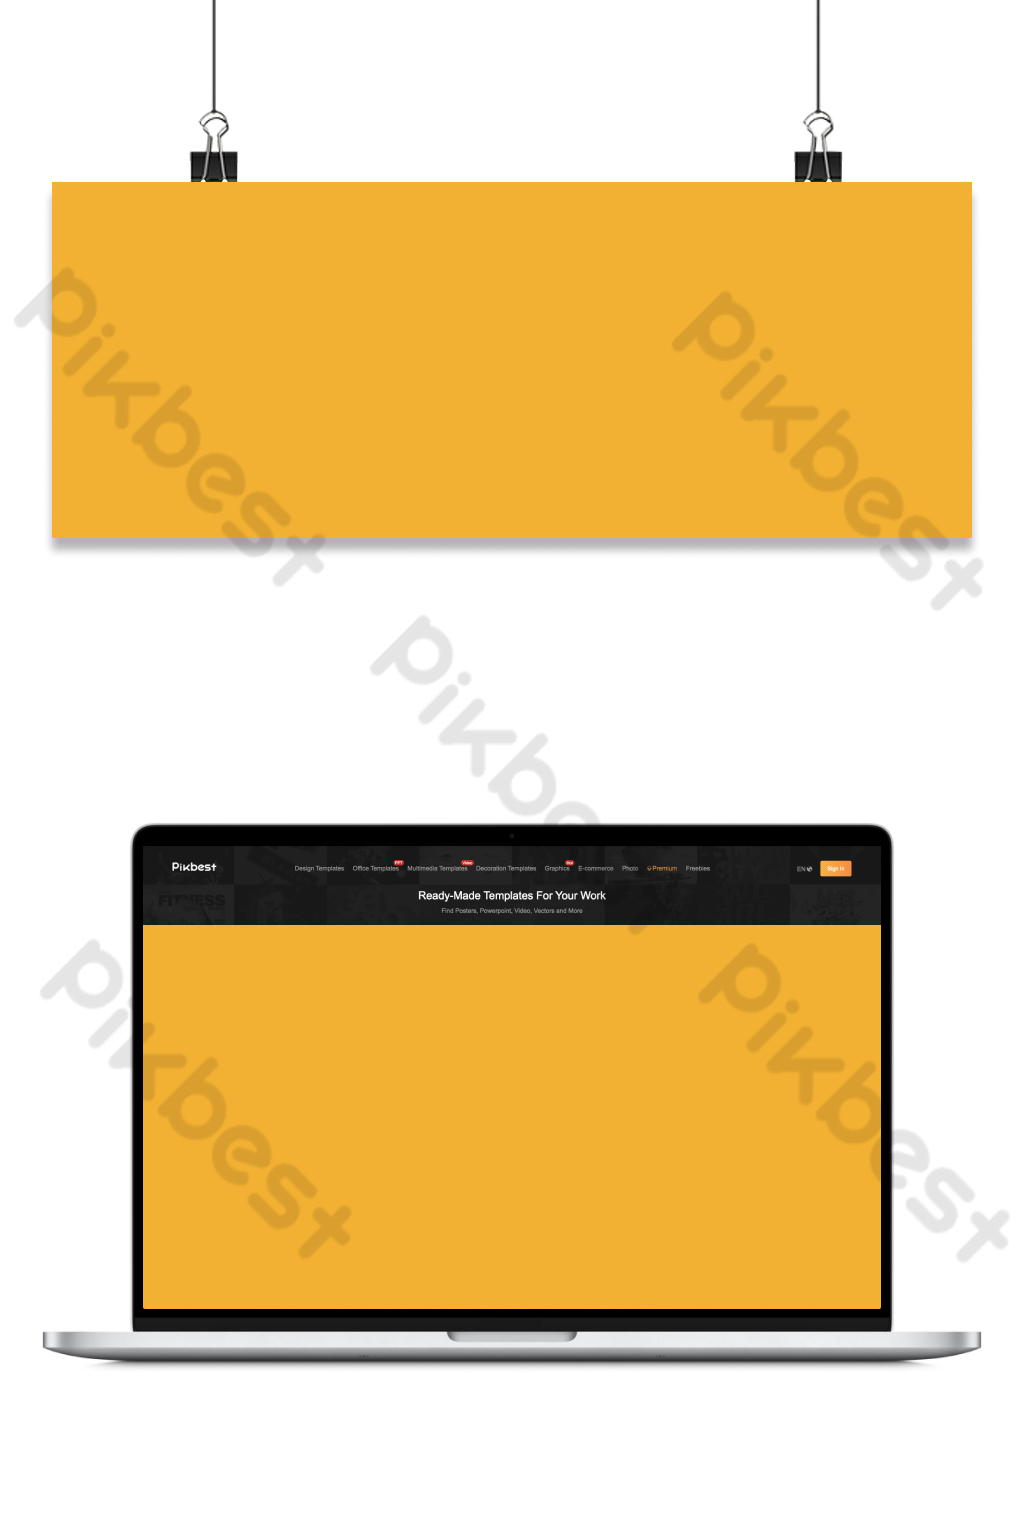 small fresh outbound simple travel around bnner background backgrounds psd free download pikbest pikbest